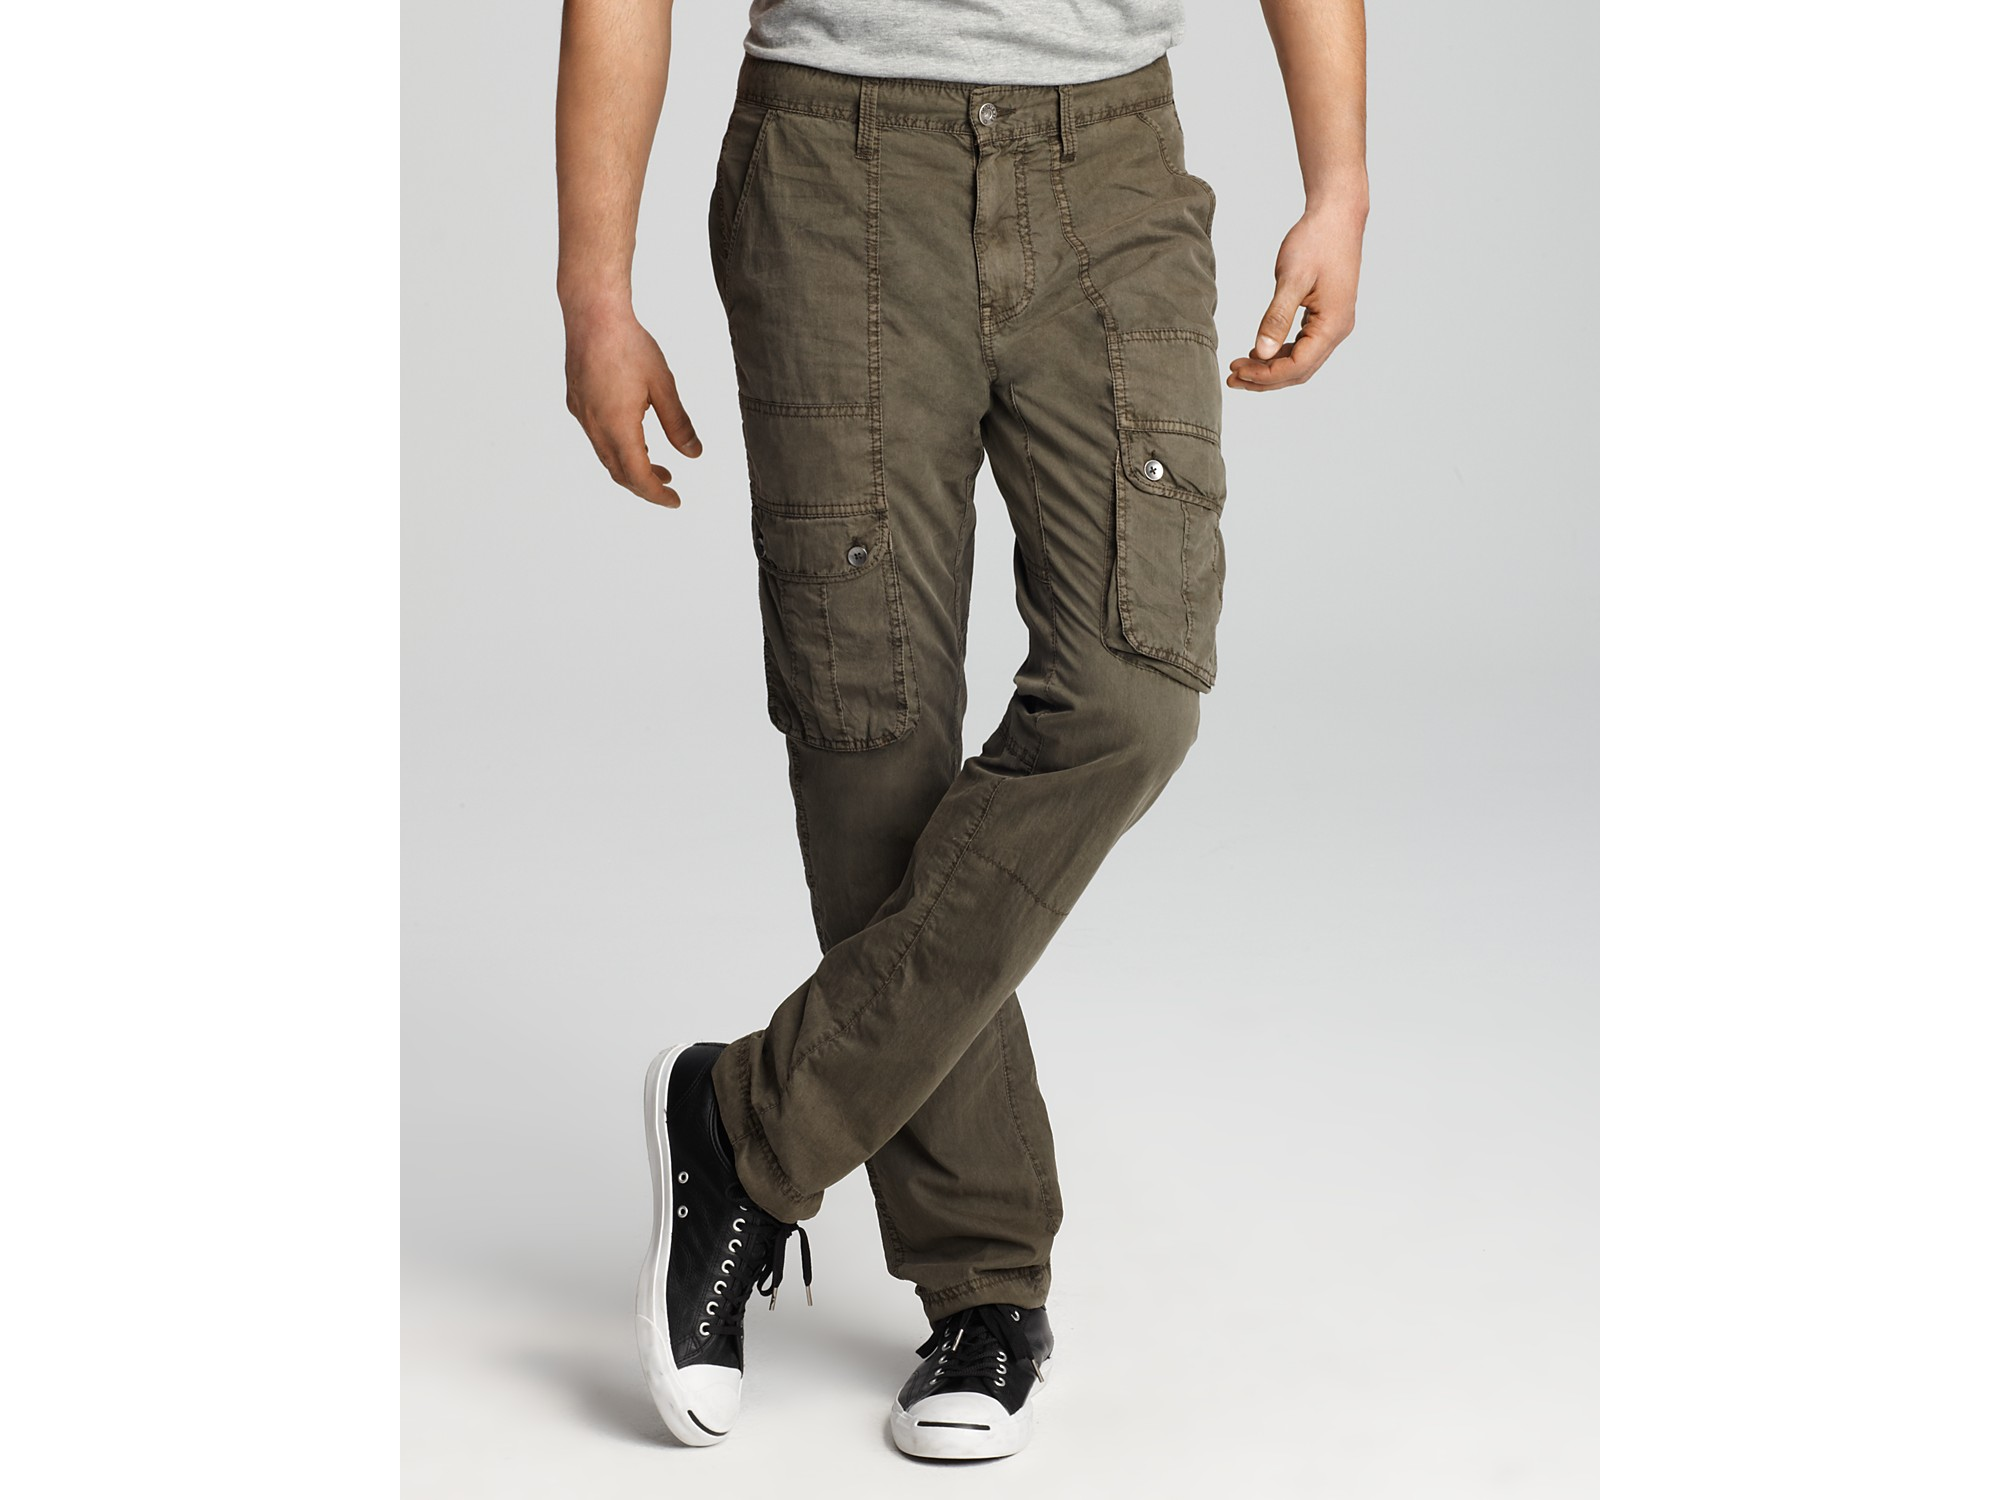 Images of Slim Fit Cargo Pants Men - Kianes